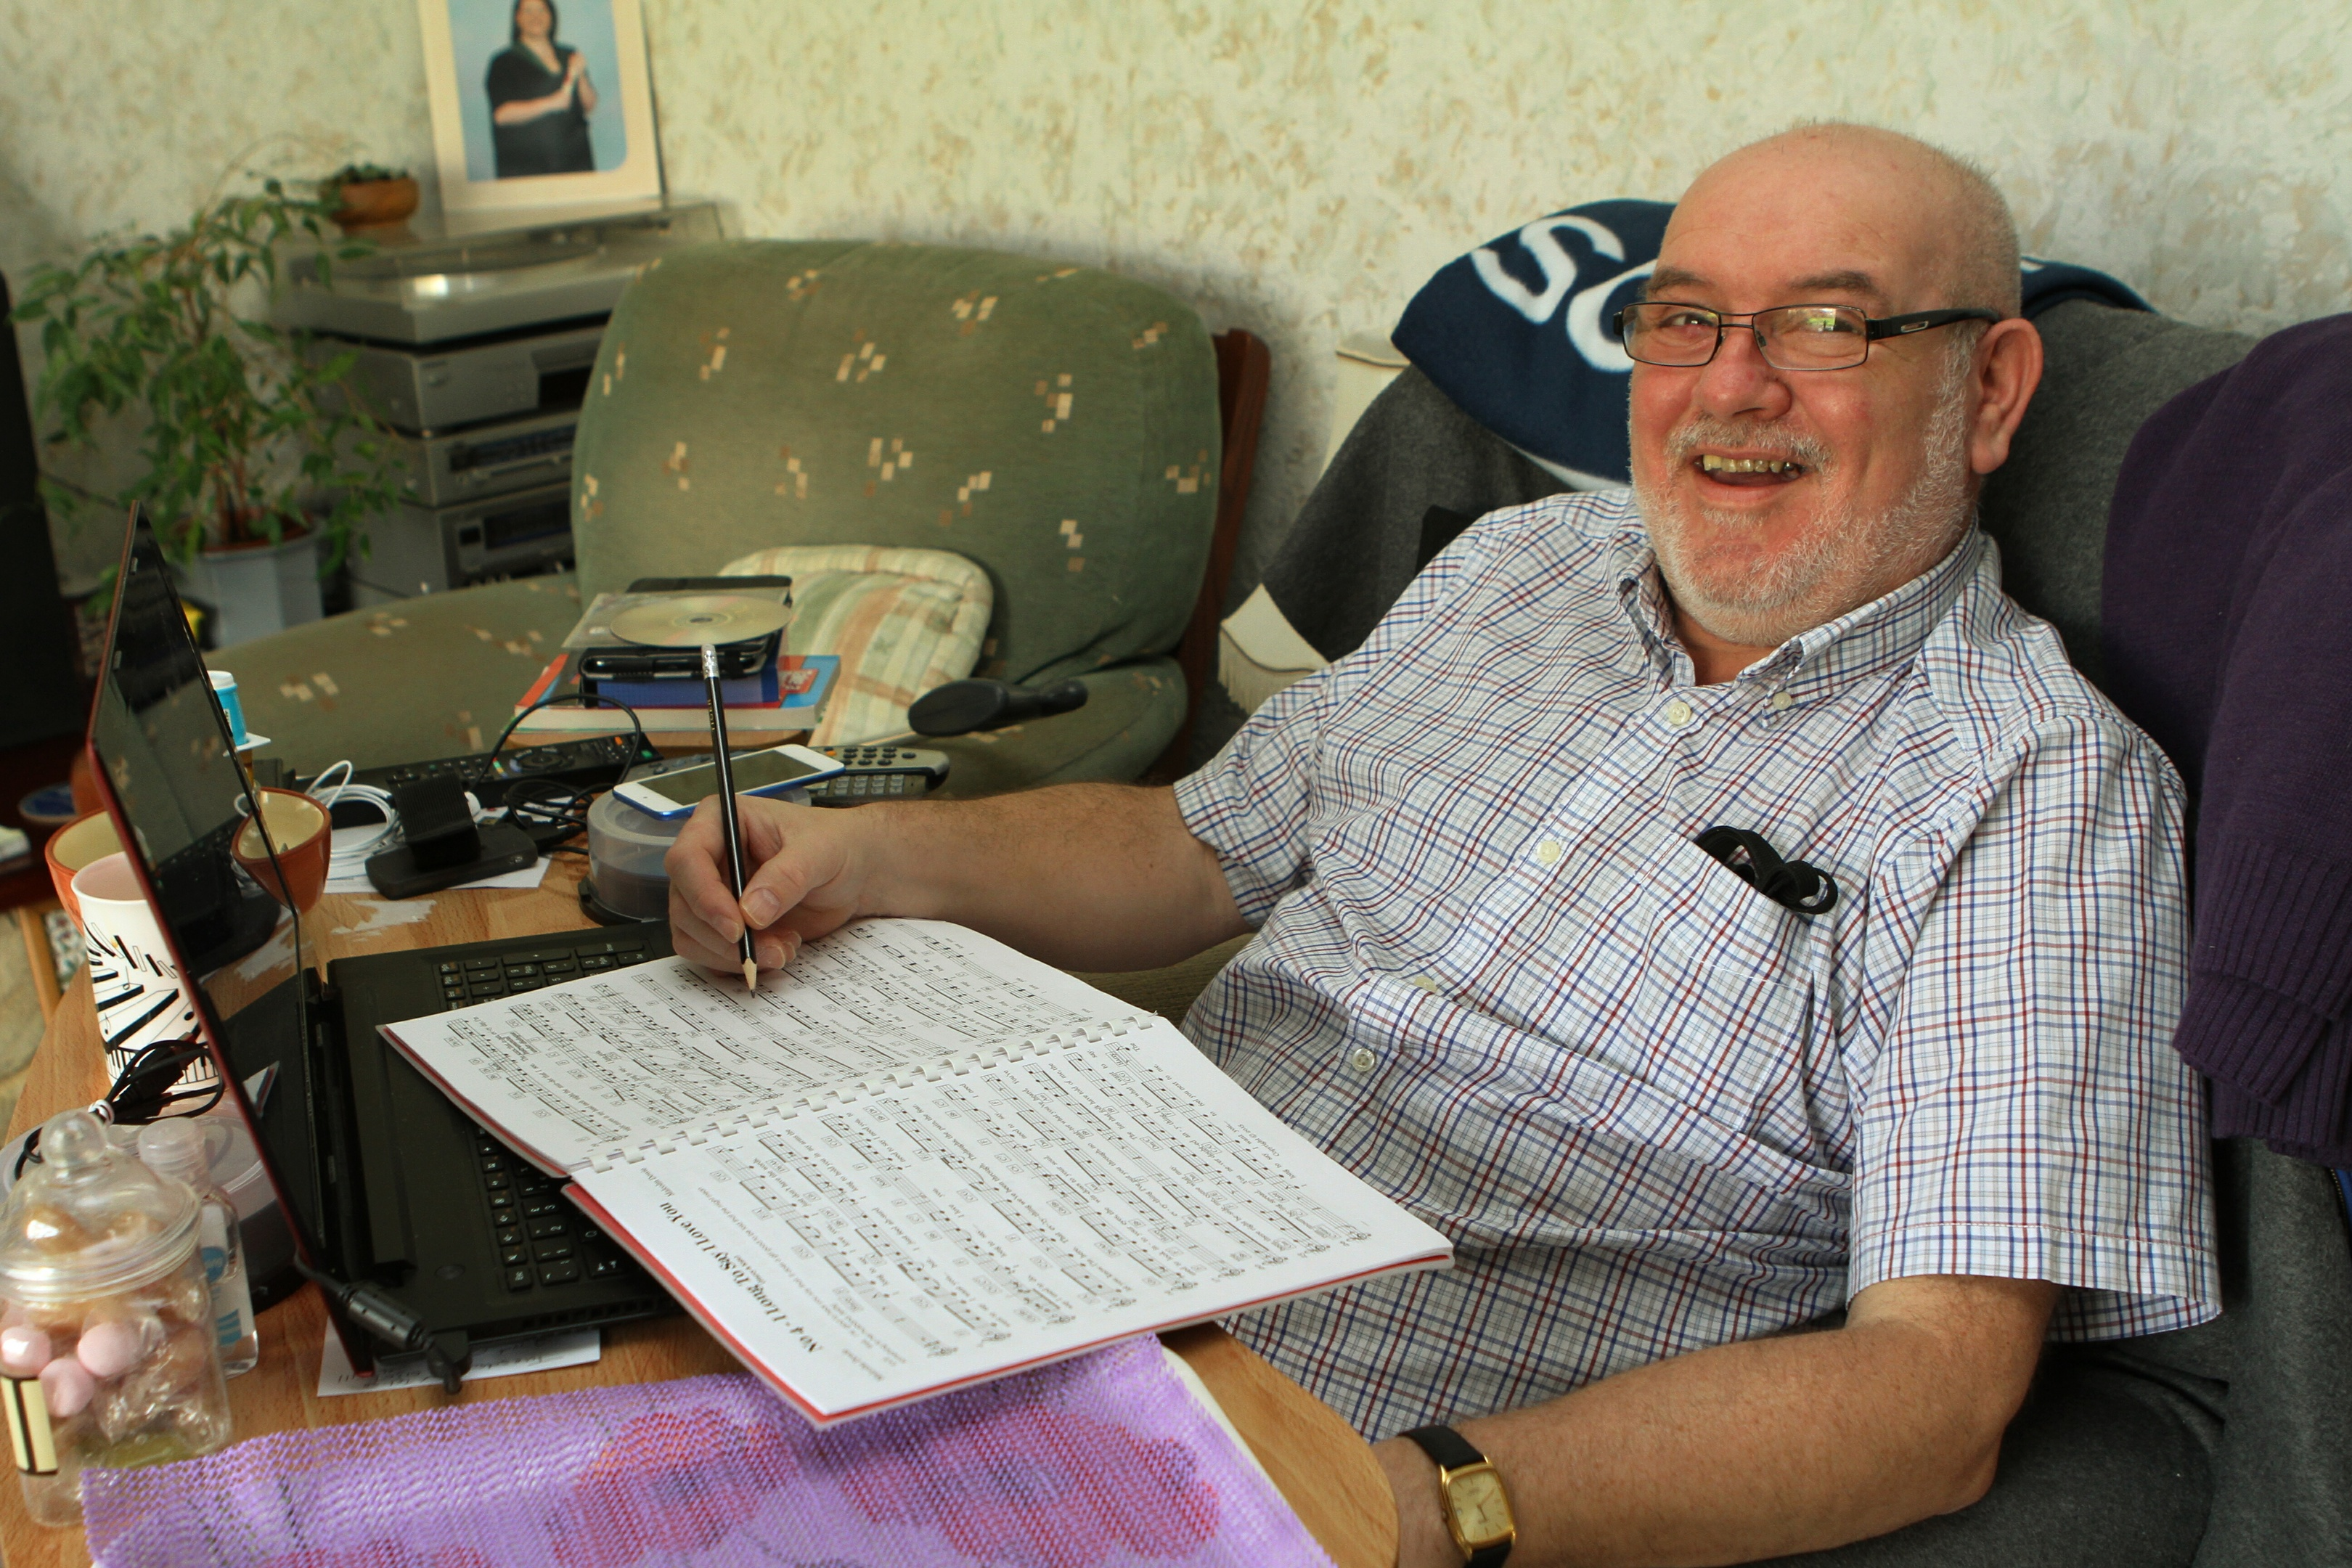 Mr Dowie working on a score at his Monifieth home.